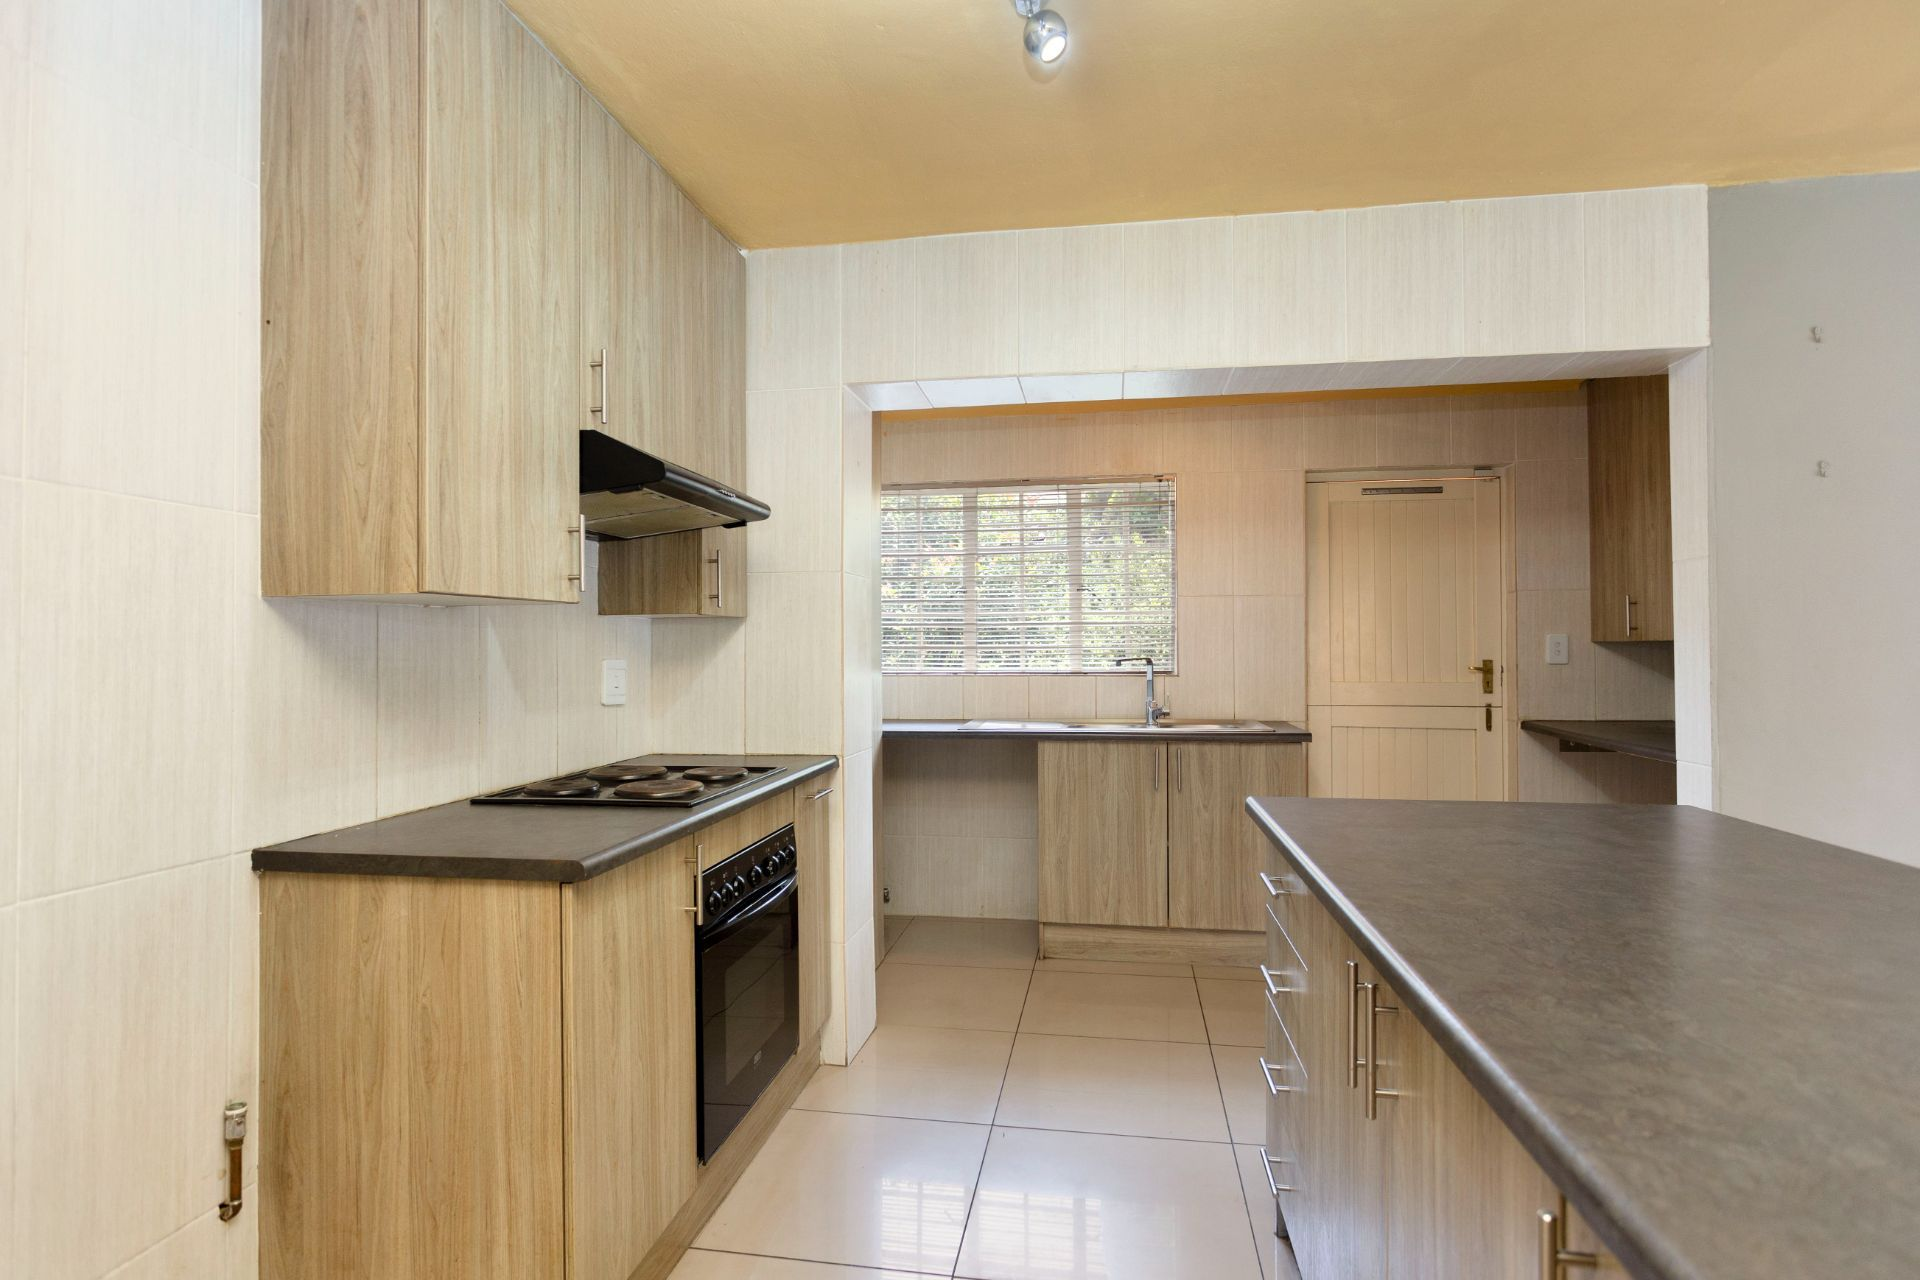 Kitchen and scullery